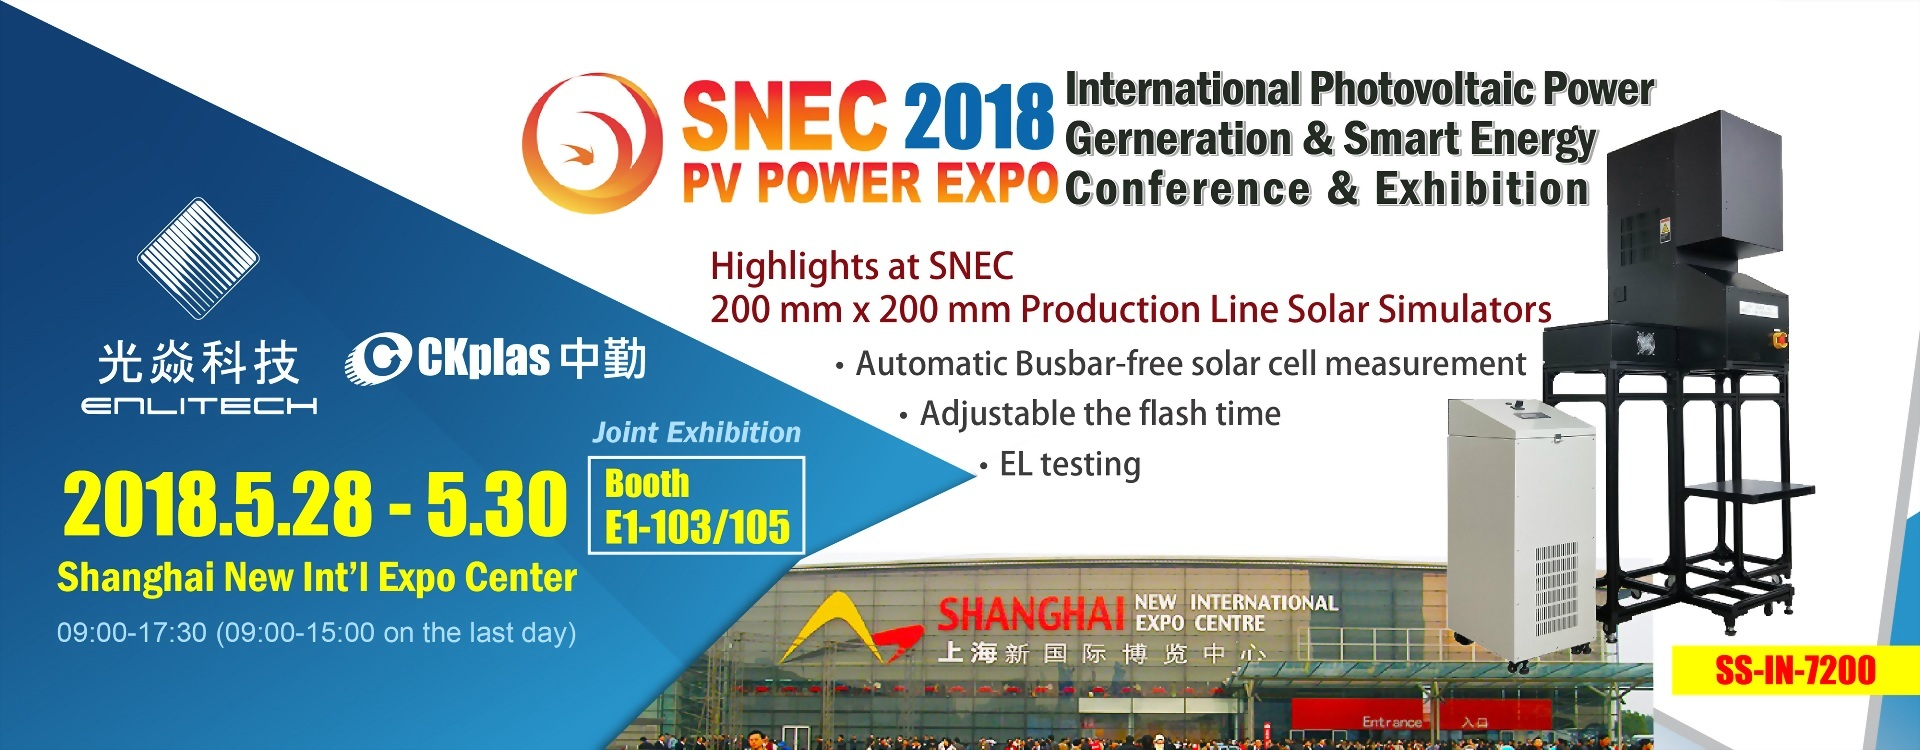 Enlitech warmly welcomes you to visit SNEC 2018 in